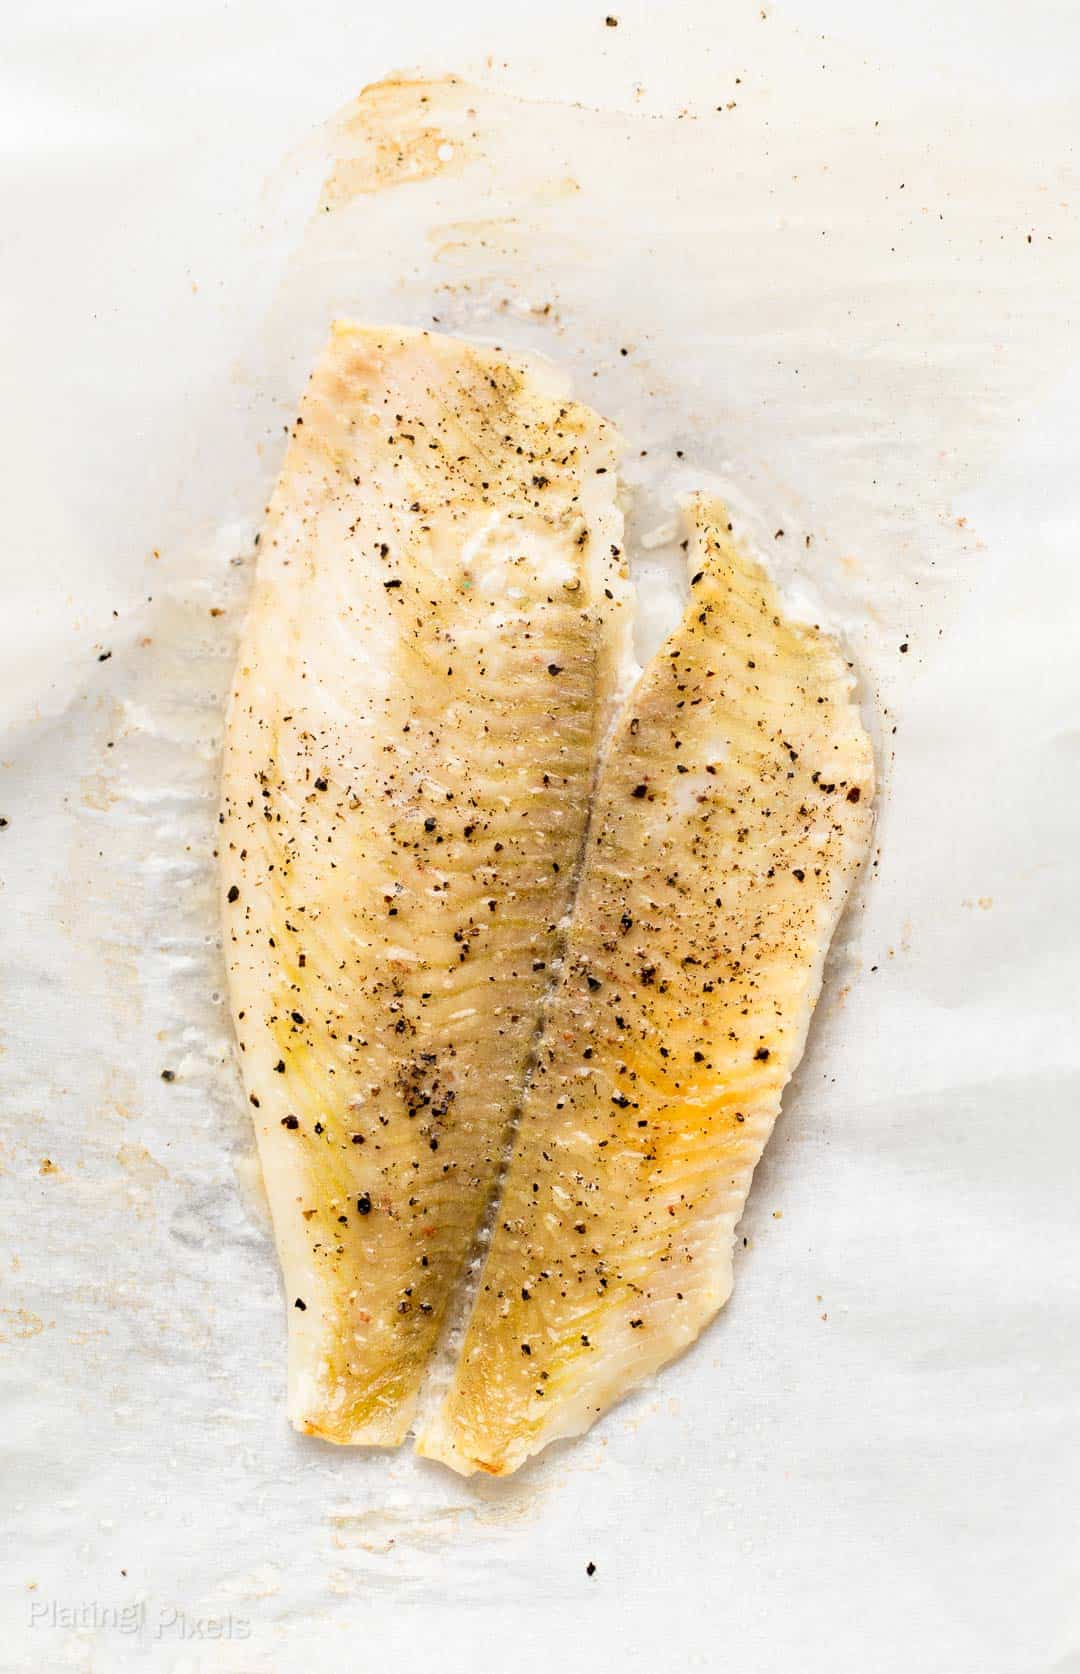 Baked Tilapia fish on a baking pan